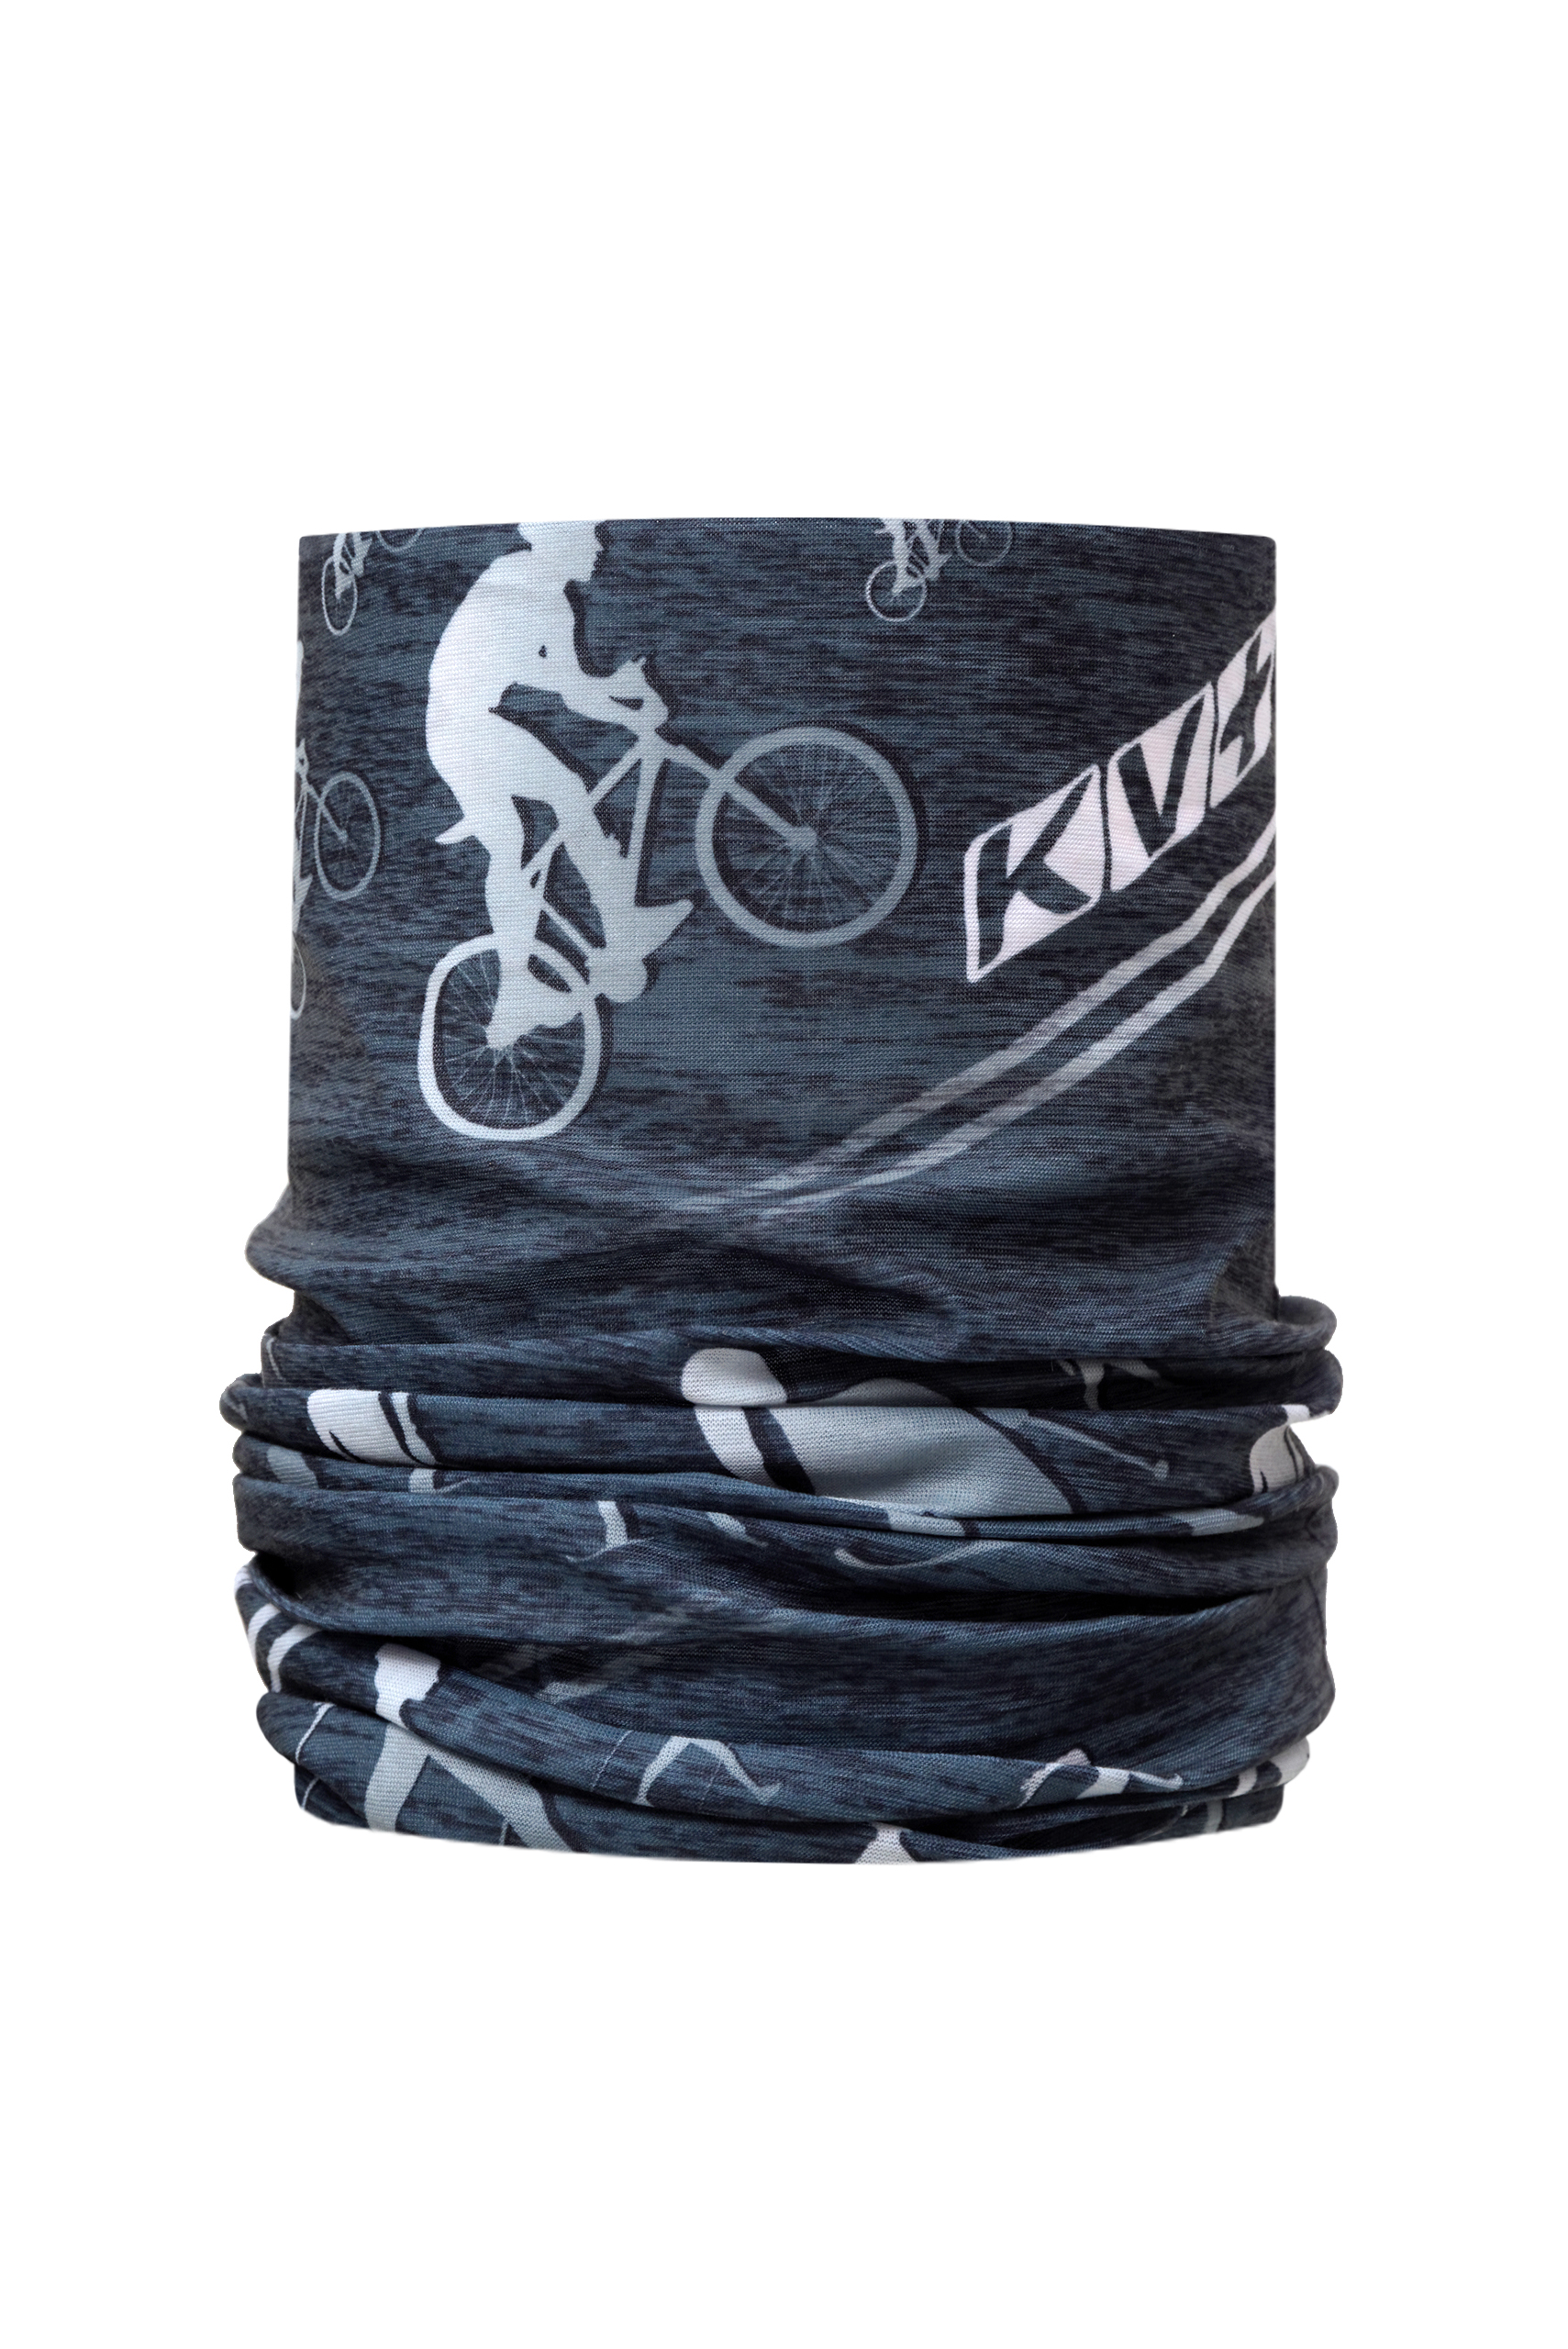 BANDANA MULTISPORT (black)